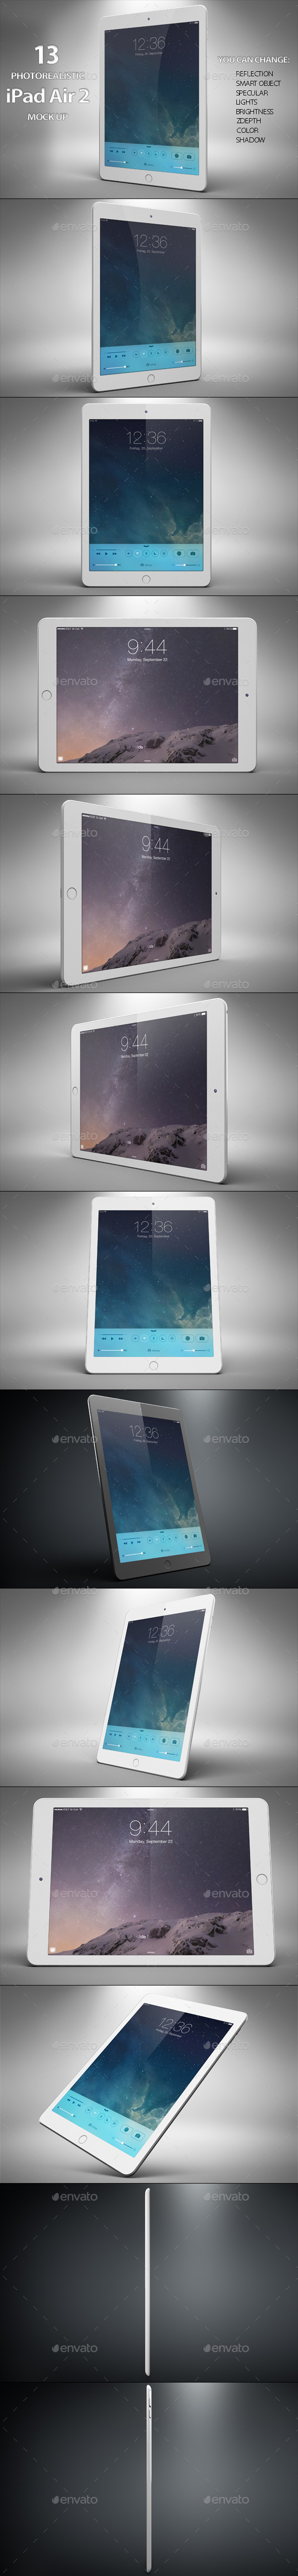 GraphicRiver iTable Air 2 Mock Up 11393432